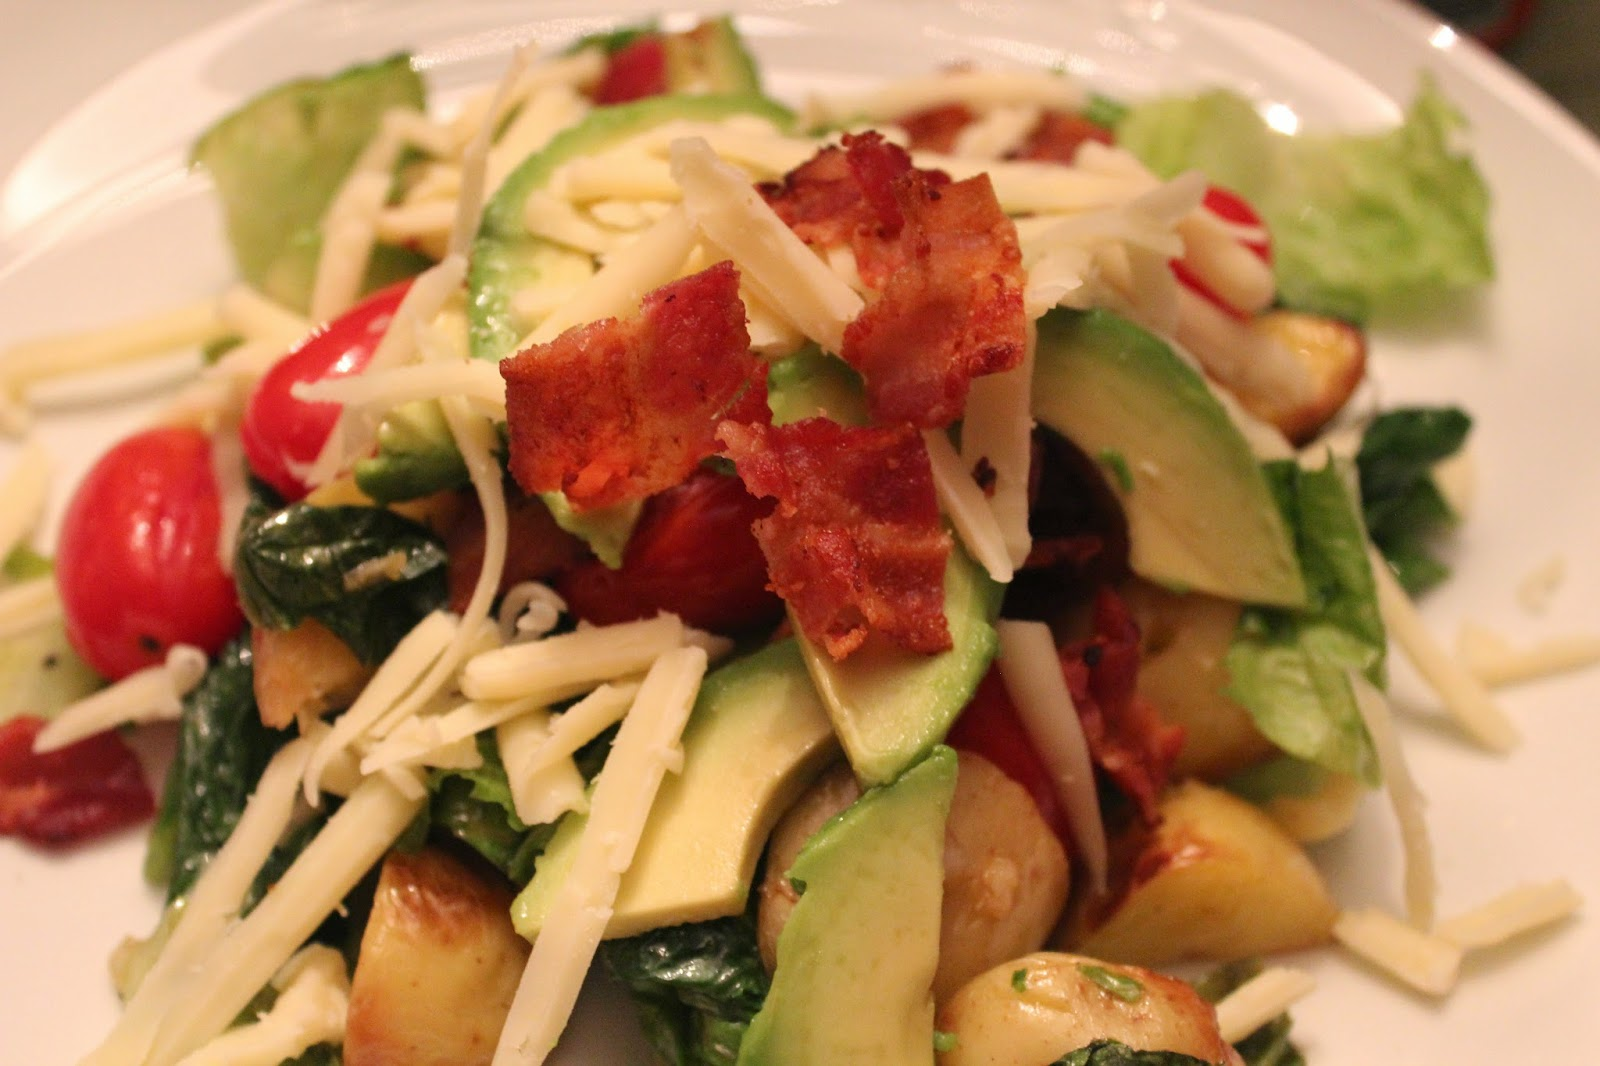 Delicious Dishings: Grilled Potato Salad, BLT Style